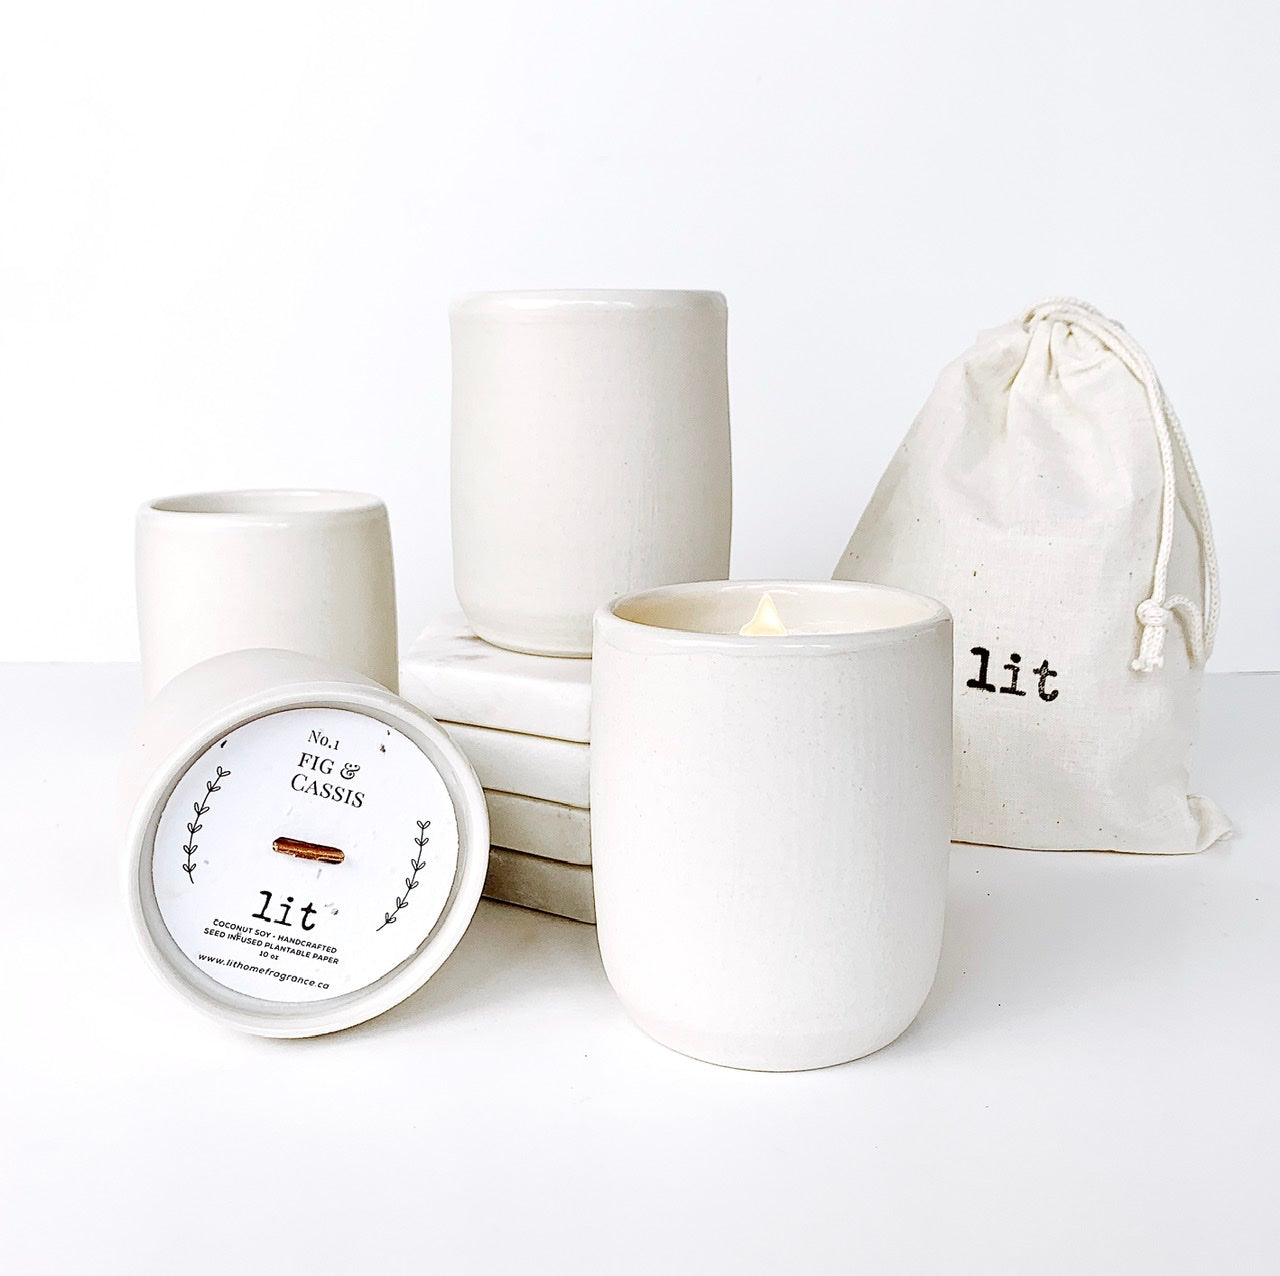 Ceramic Limited Collection ( Lit + Jenna Archer Shop )